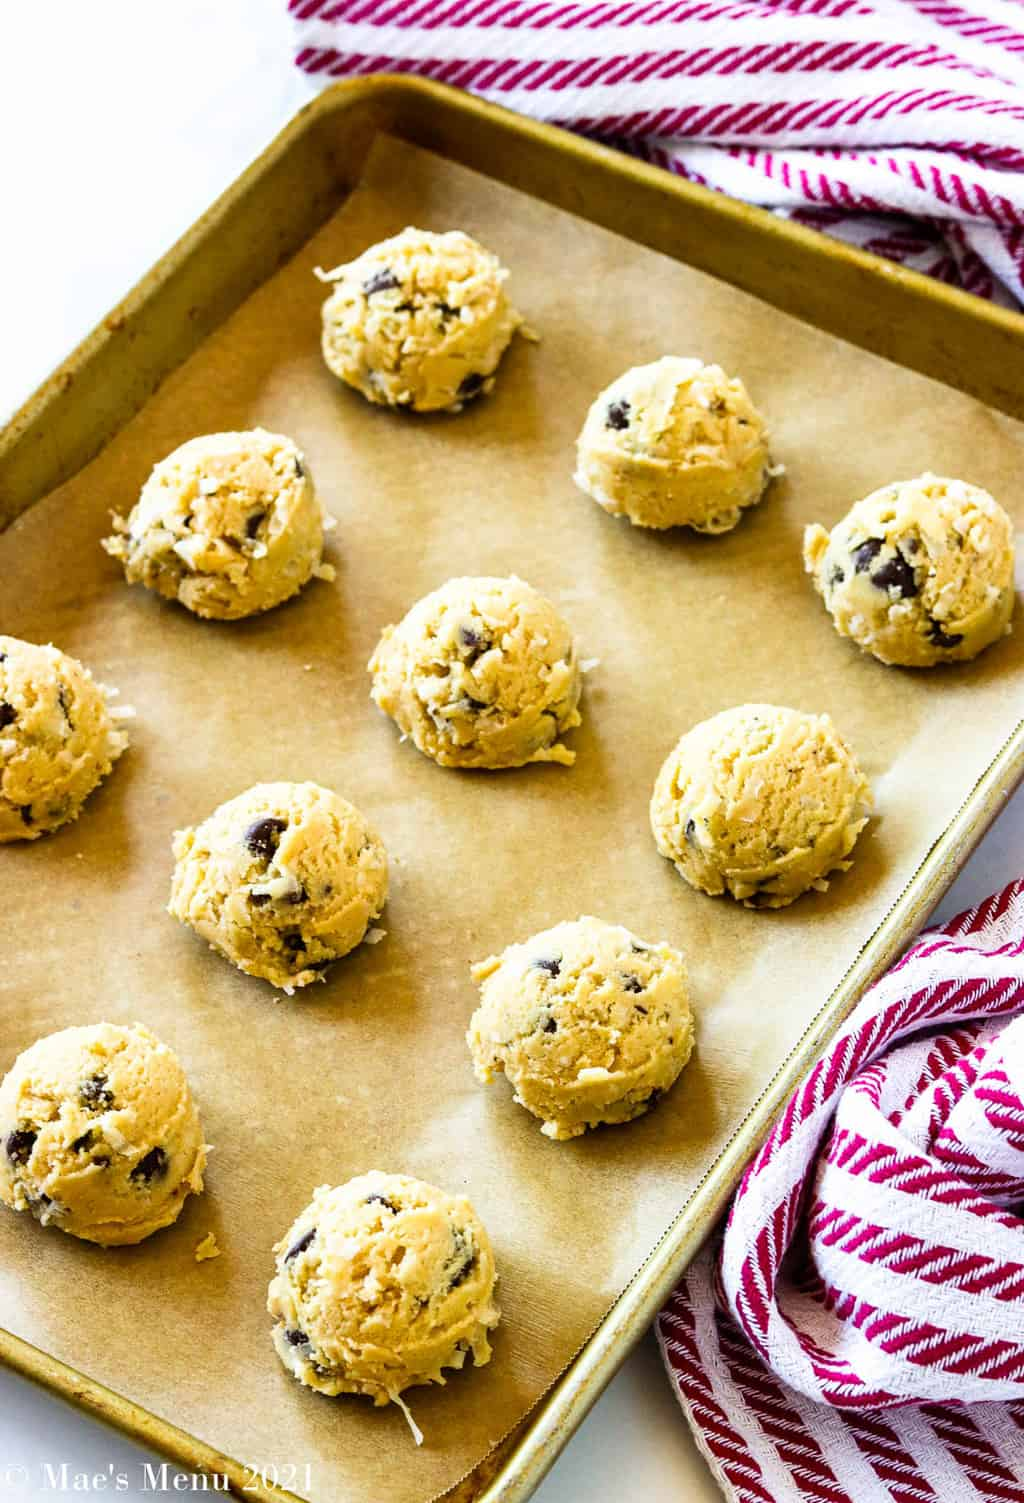 Chocolate chip coconut cookies scooped onto a baking dish